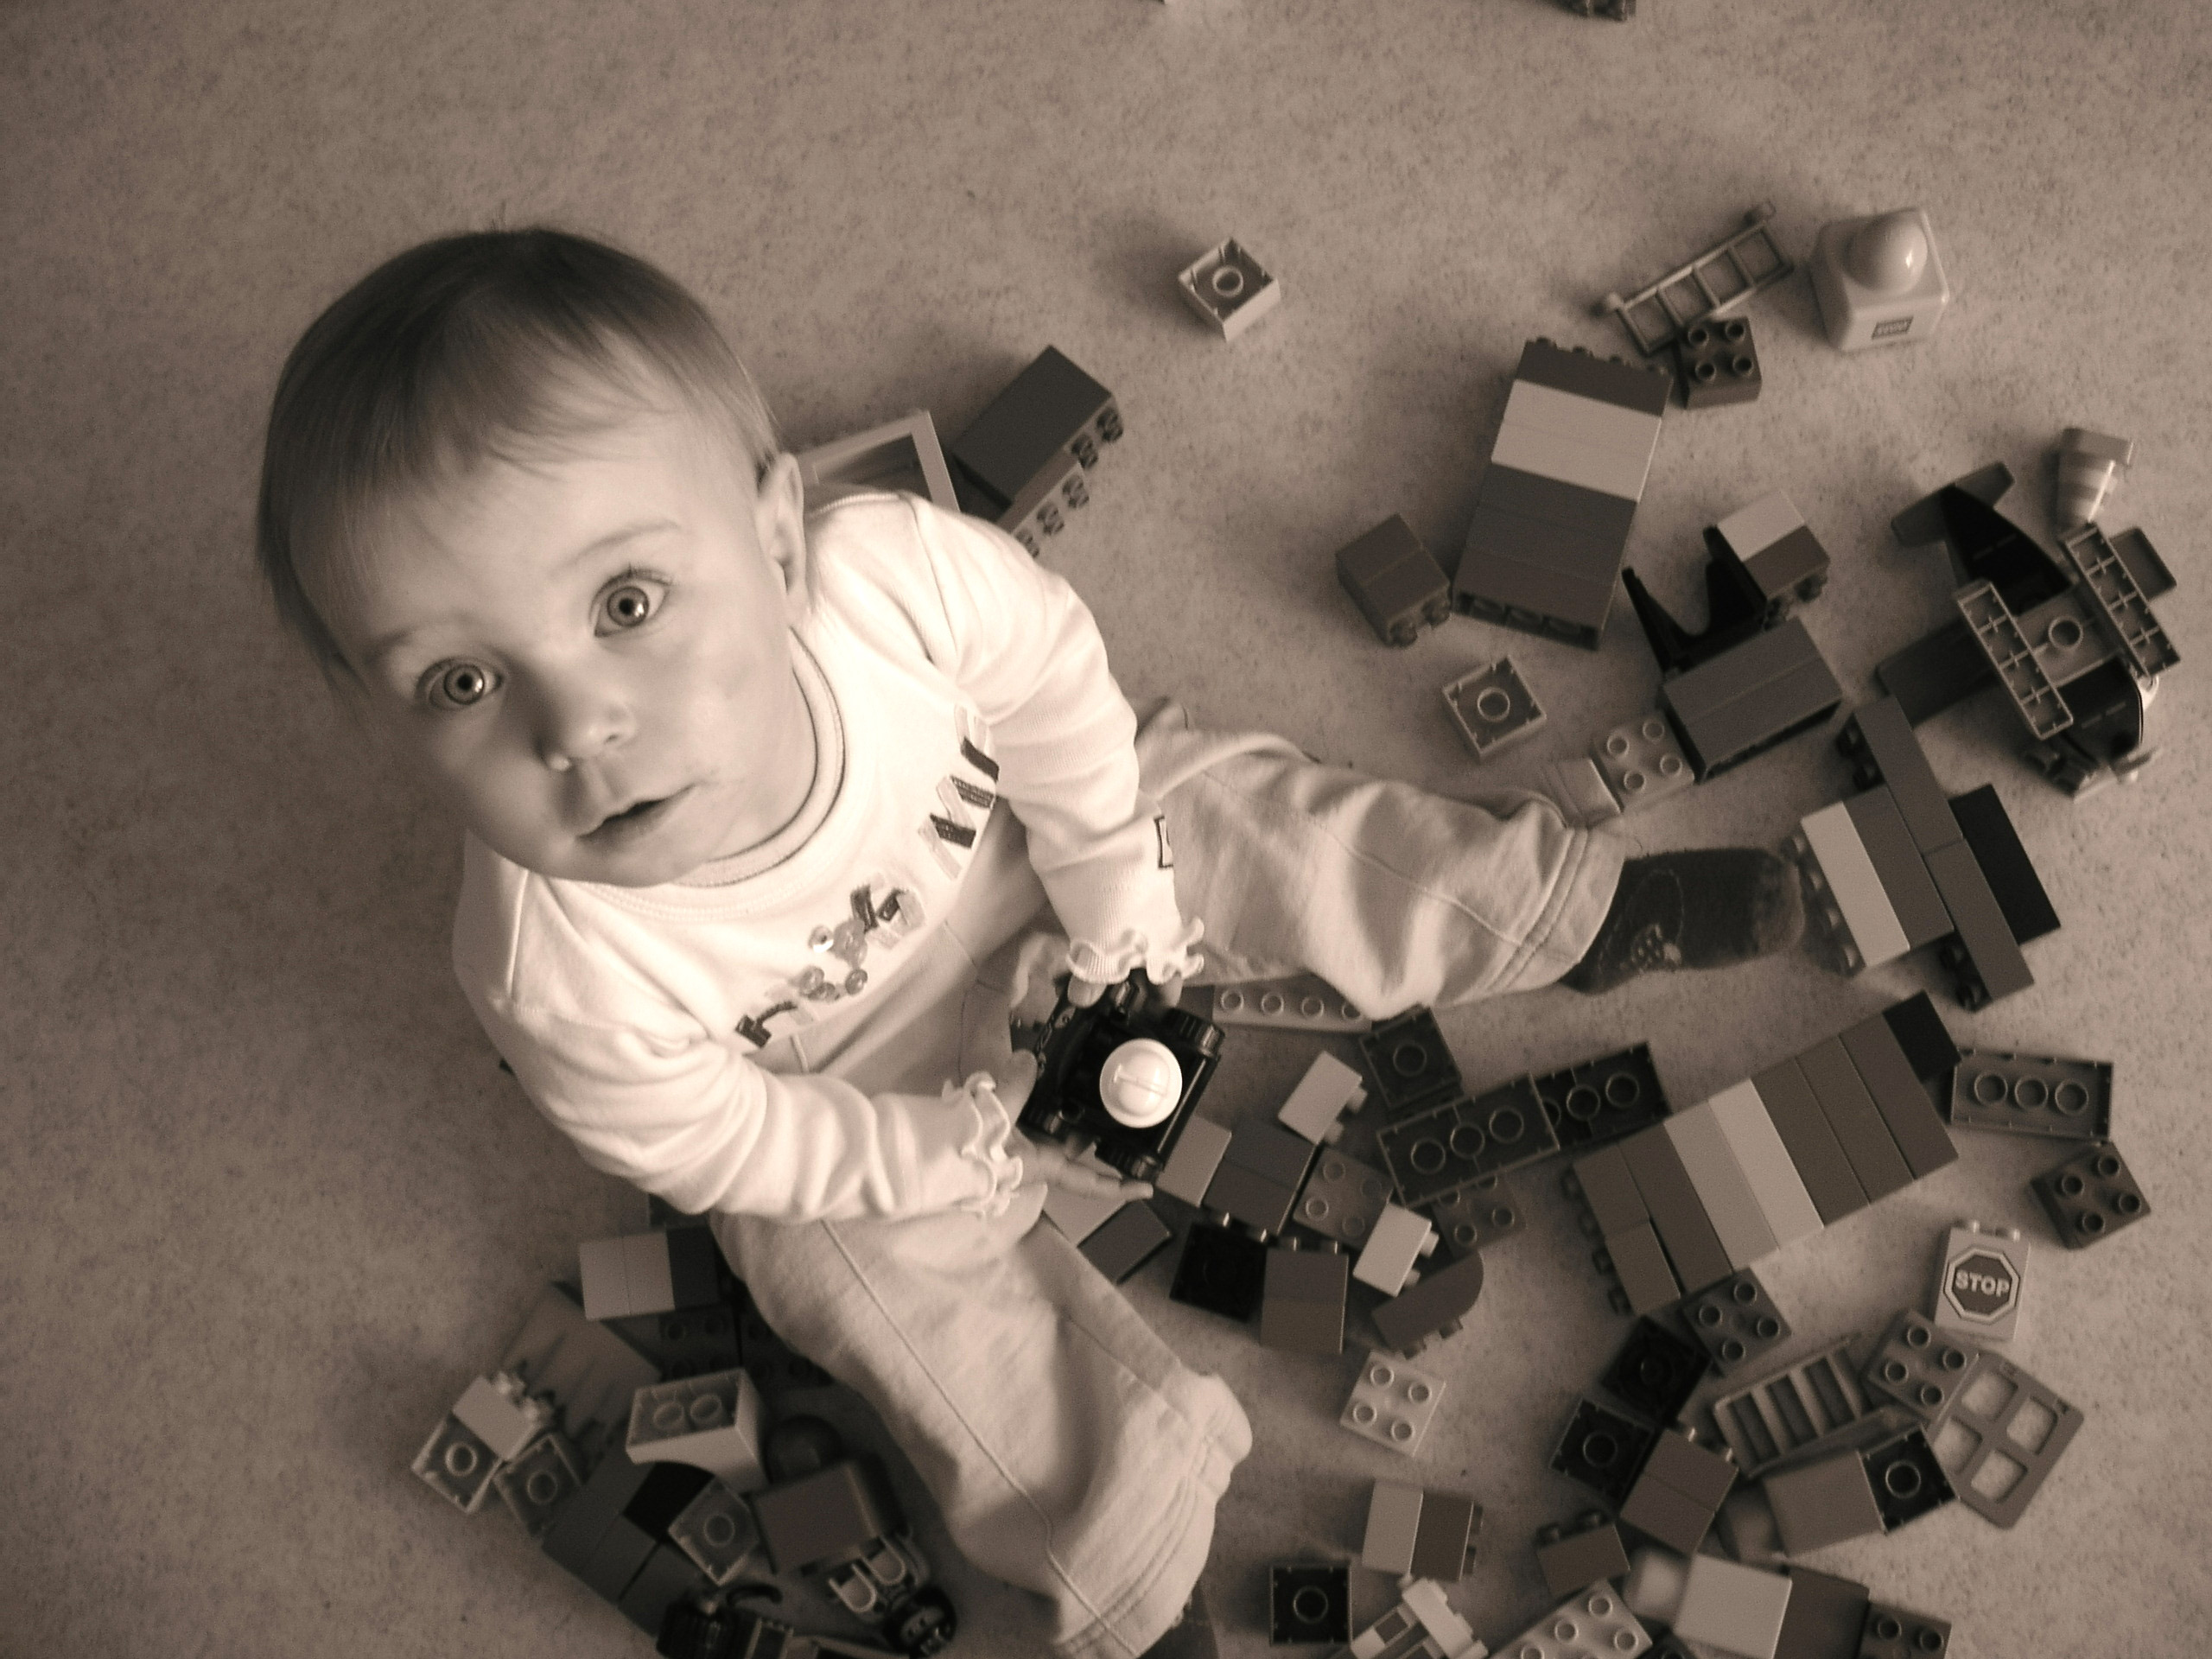 Creativity child with blocks